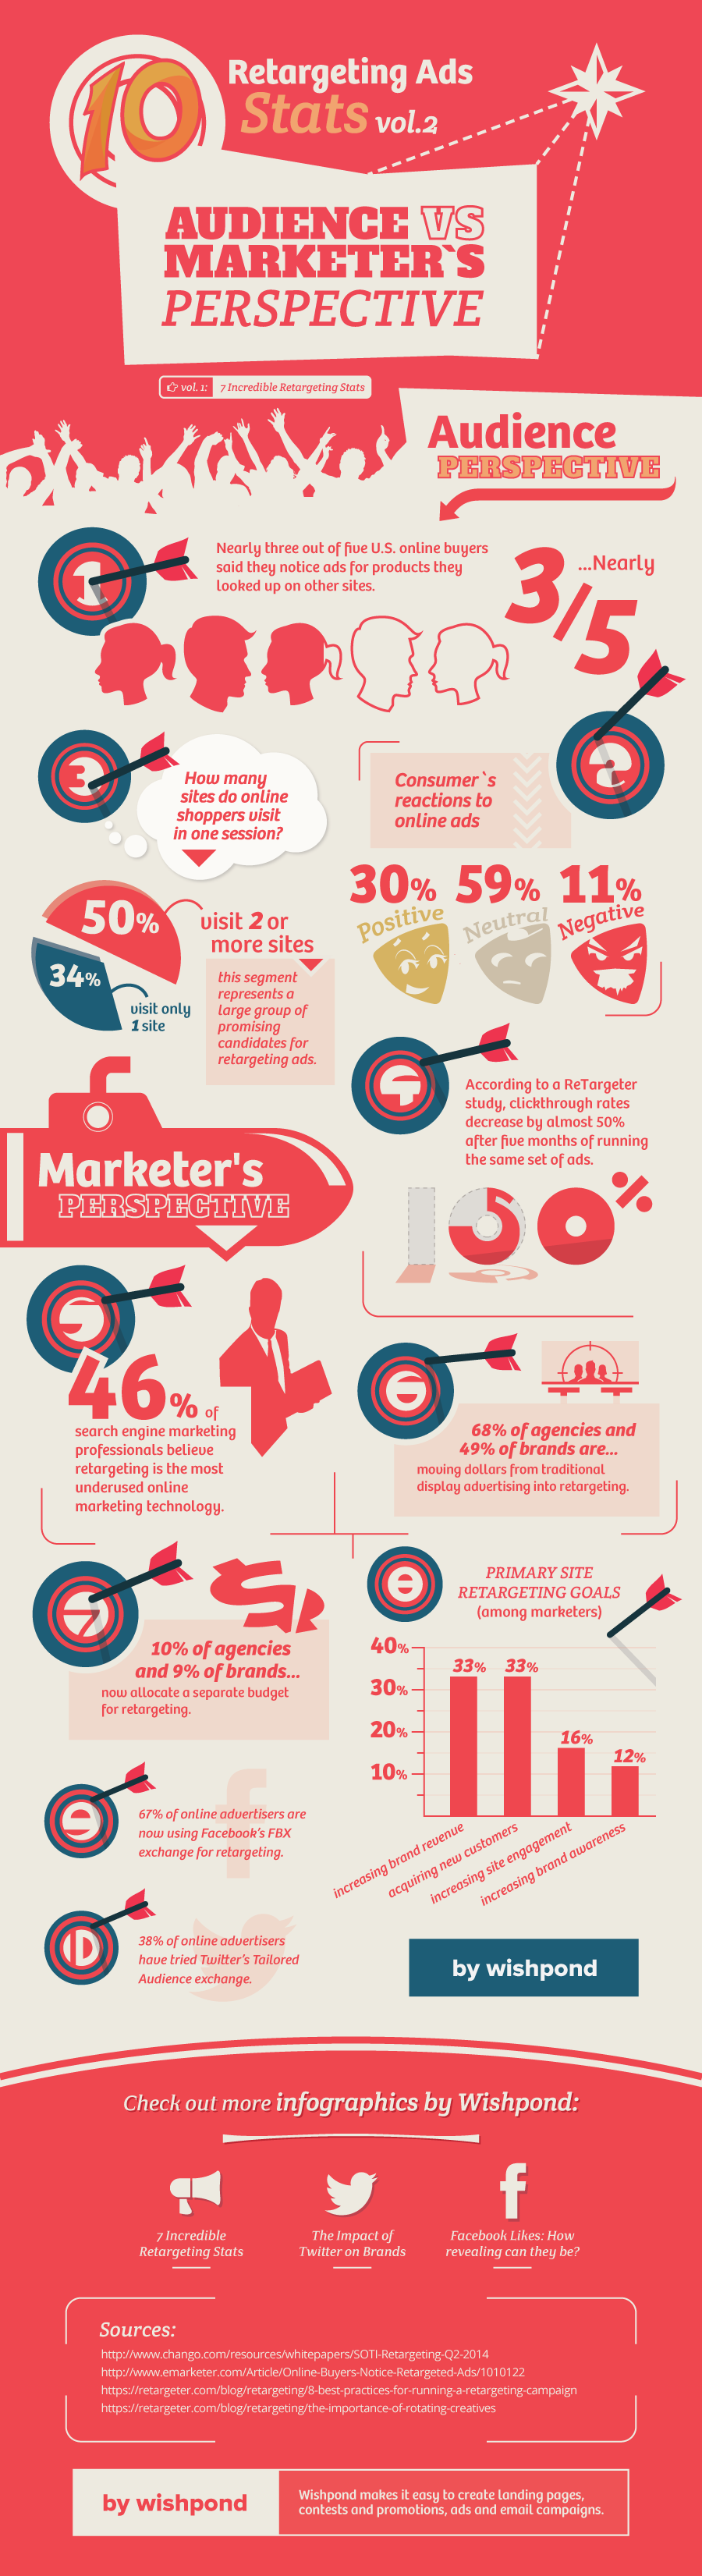 [Infographic] Ad Retargeting Statistics: Audience vs. Marketers Perspective - Facts and Figures